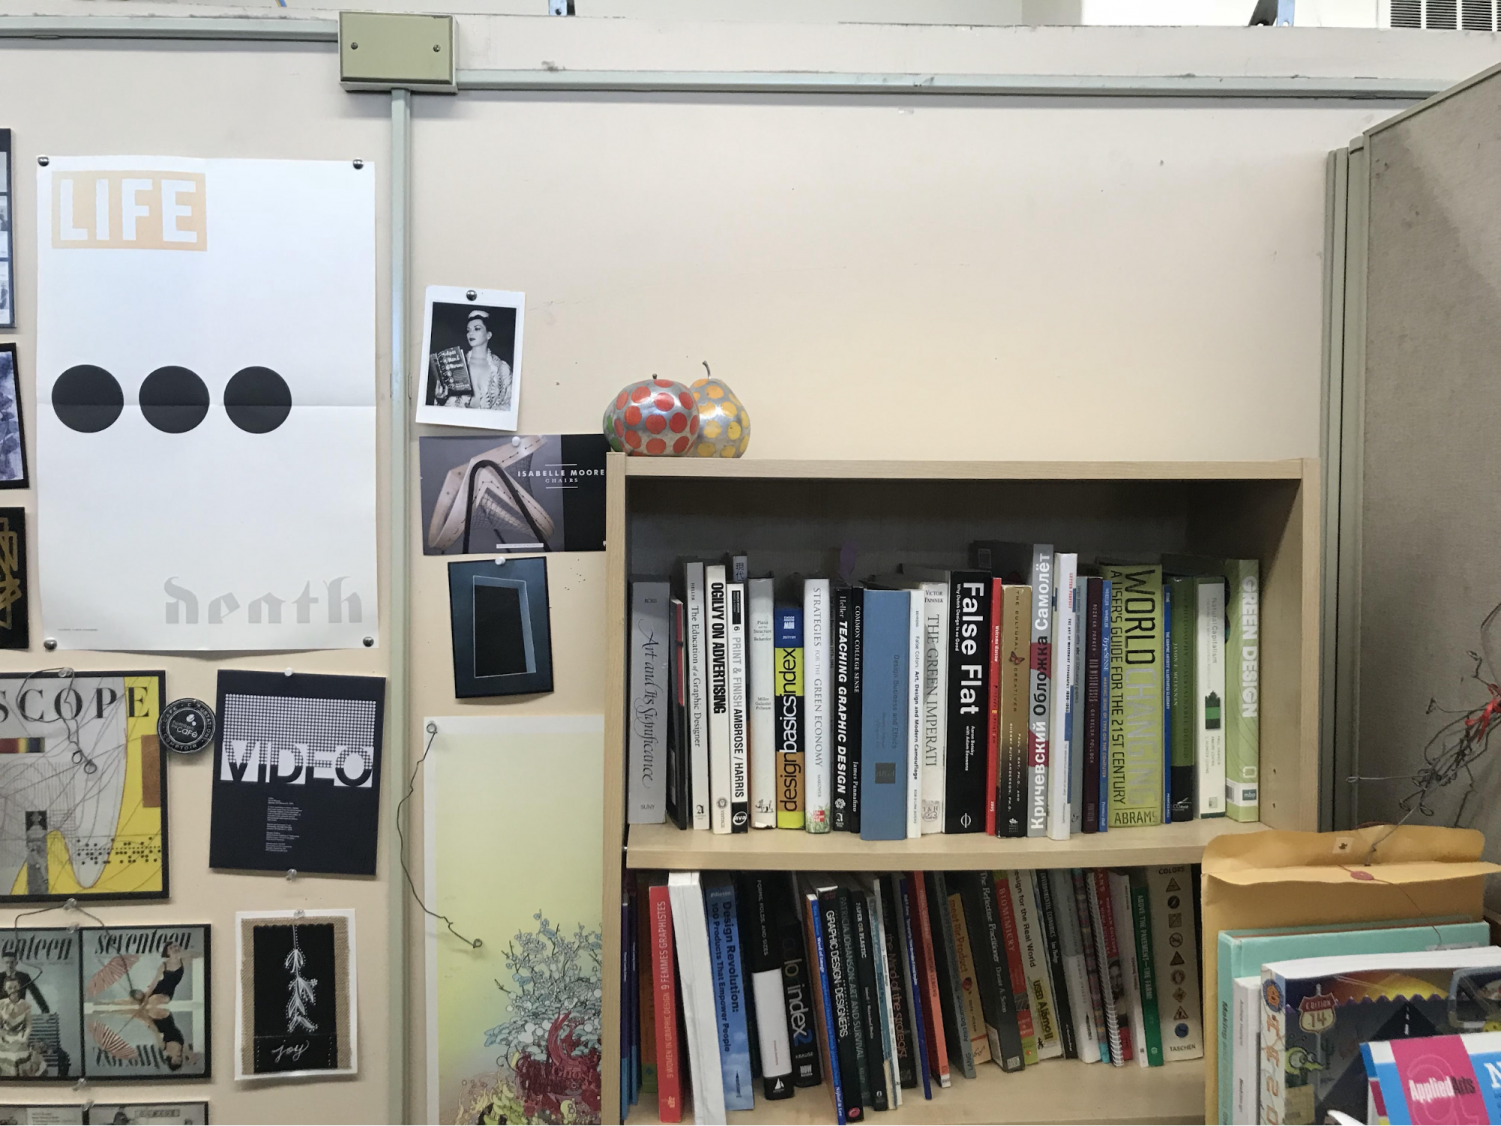 Professor Aaris Sherin's office with the 16 books that she discovered missing on April 11 were stacked atop this bookshelf.